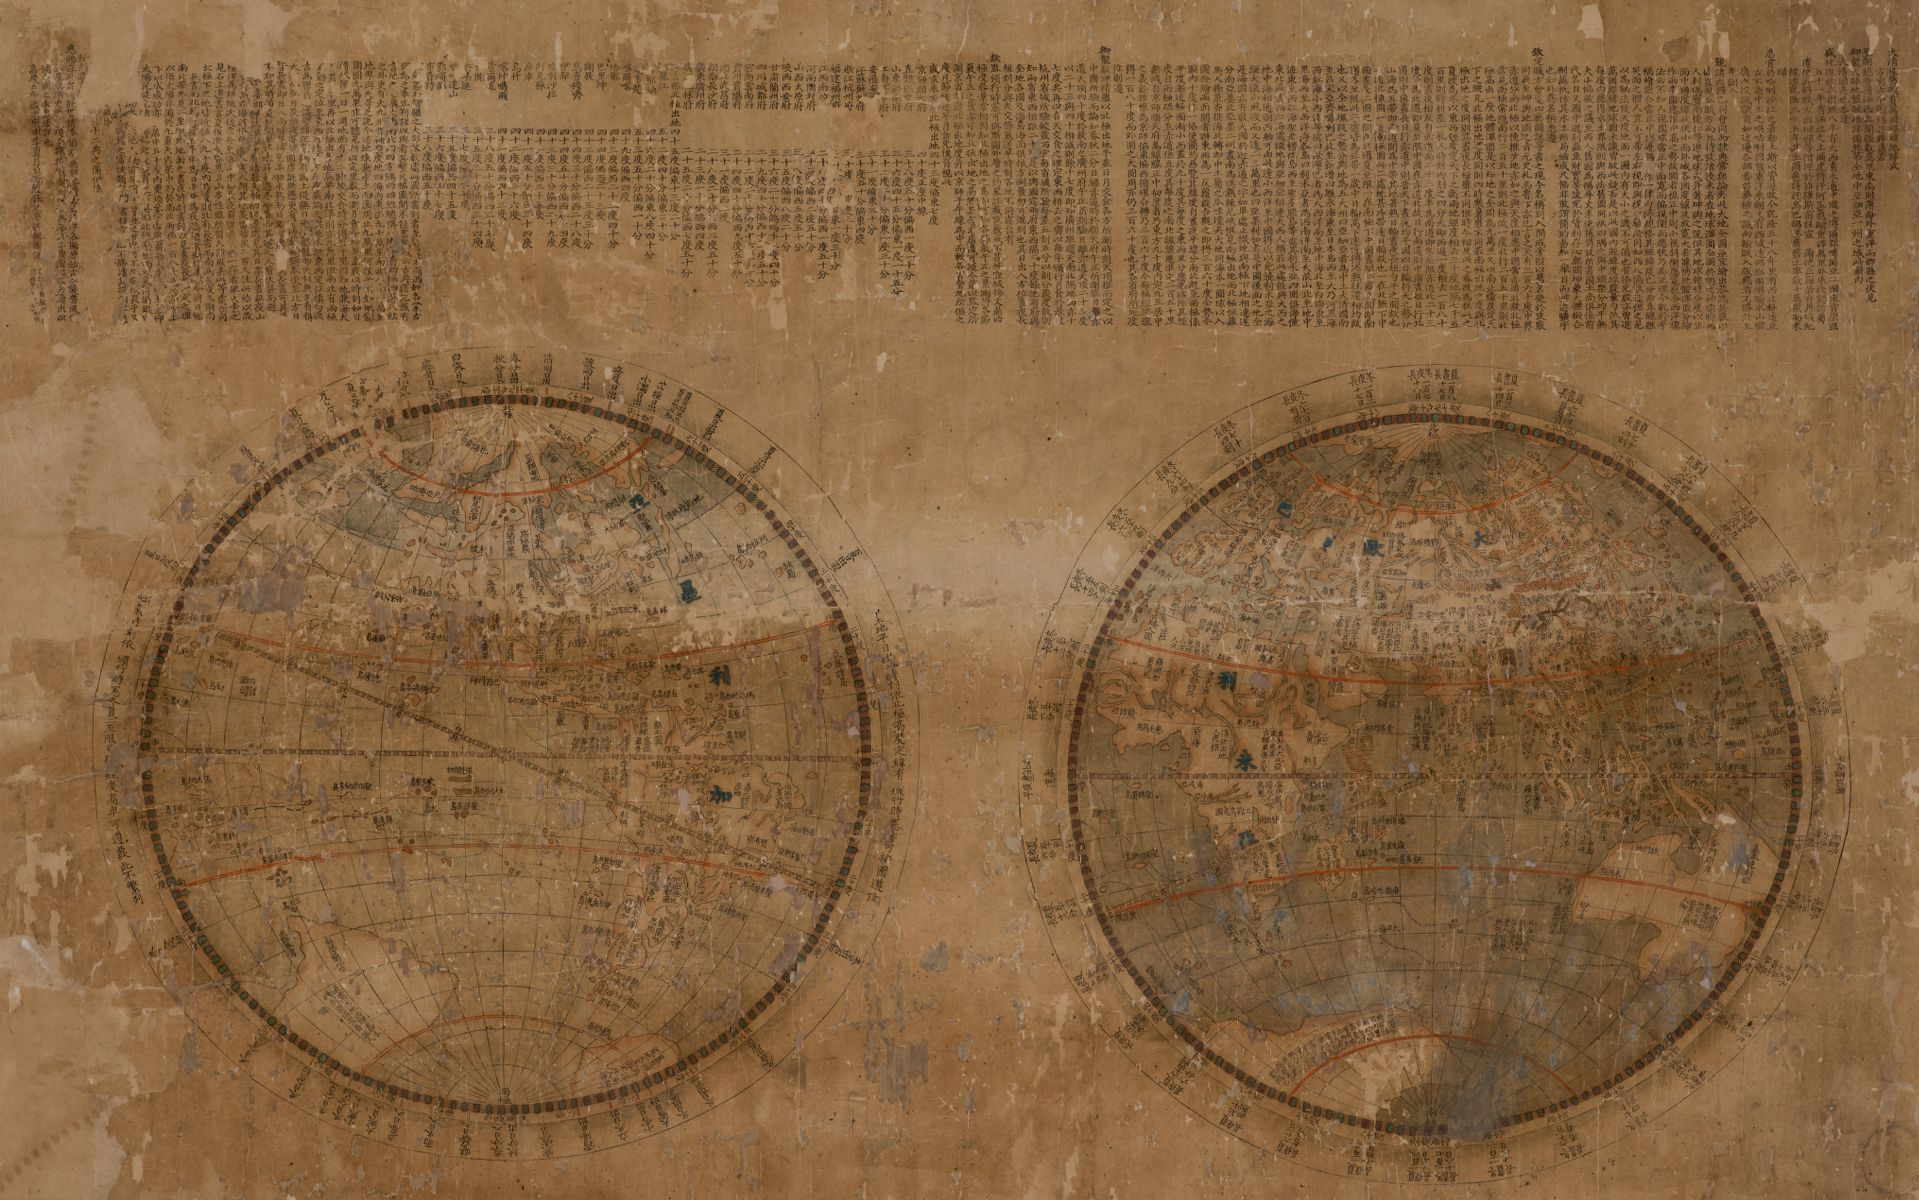 Zhuang Tingfu, 大清統職貢萬國經緯地球式方輿古今圖 [=Great Qing Dynasty world map of tribute bearing countries with spherical coordinates, past and present] (1800). China, Qing dynasty, Jiajing period (1796-1821), hanging scroll, ink and color on paper, 60 × 93 cm (image), 211 × 104 cm (overall), MacLean Collection 29773.